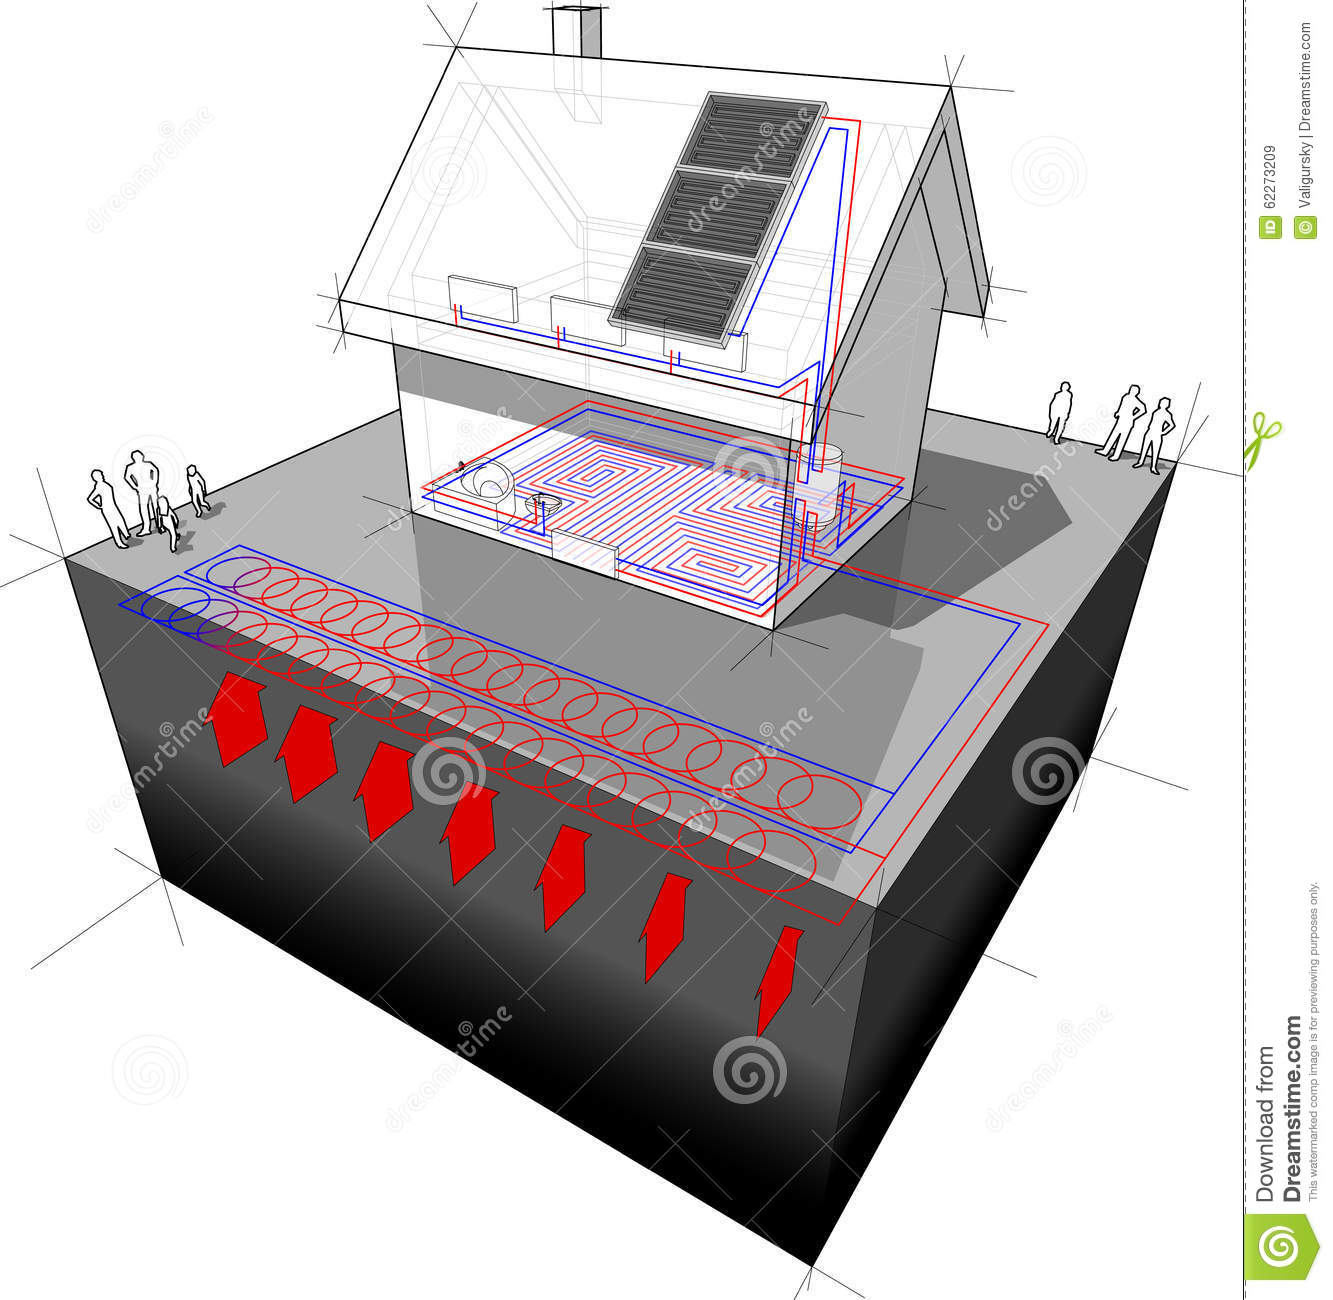 Detached house with geothermal source heat pump and solar for Geothermal house plans